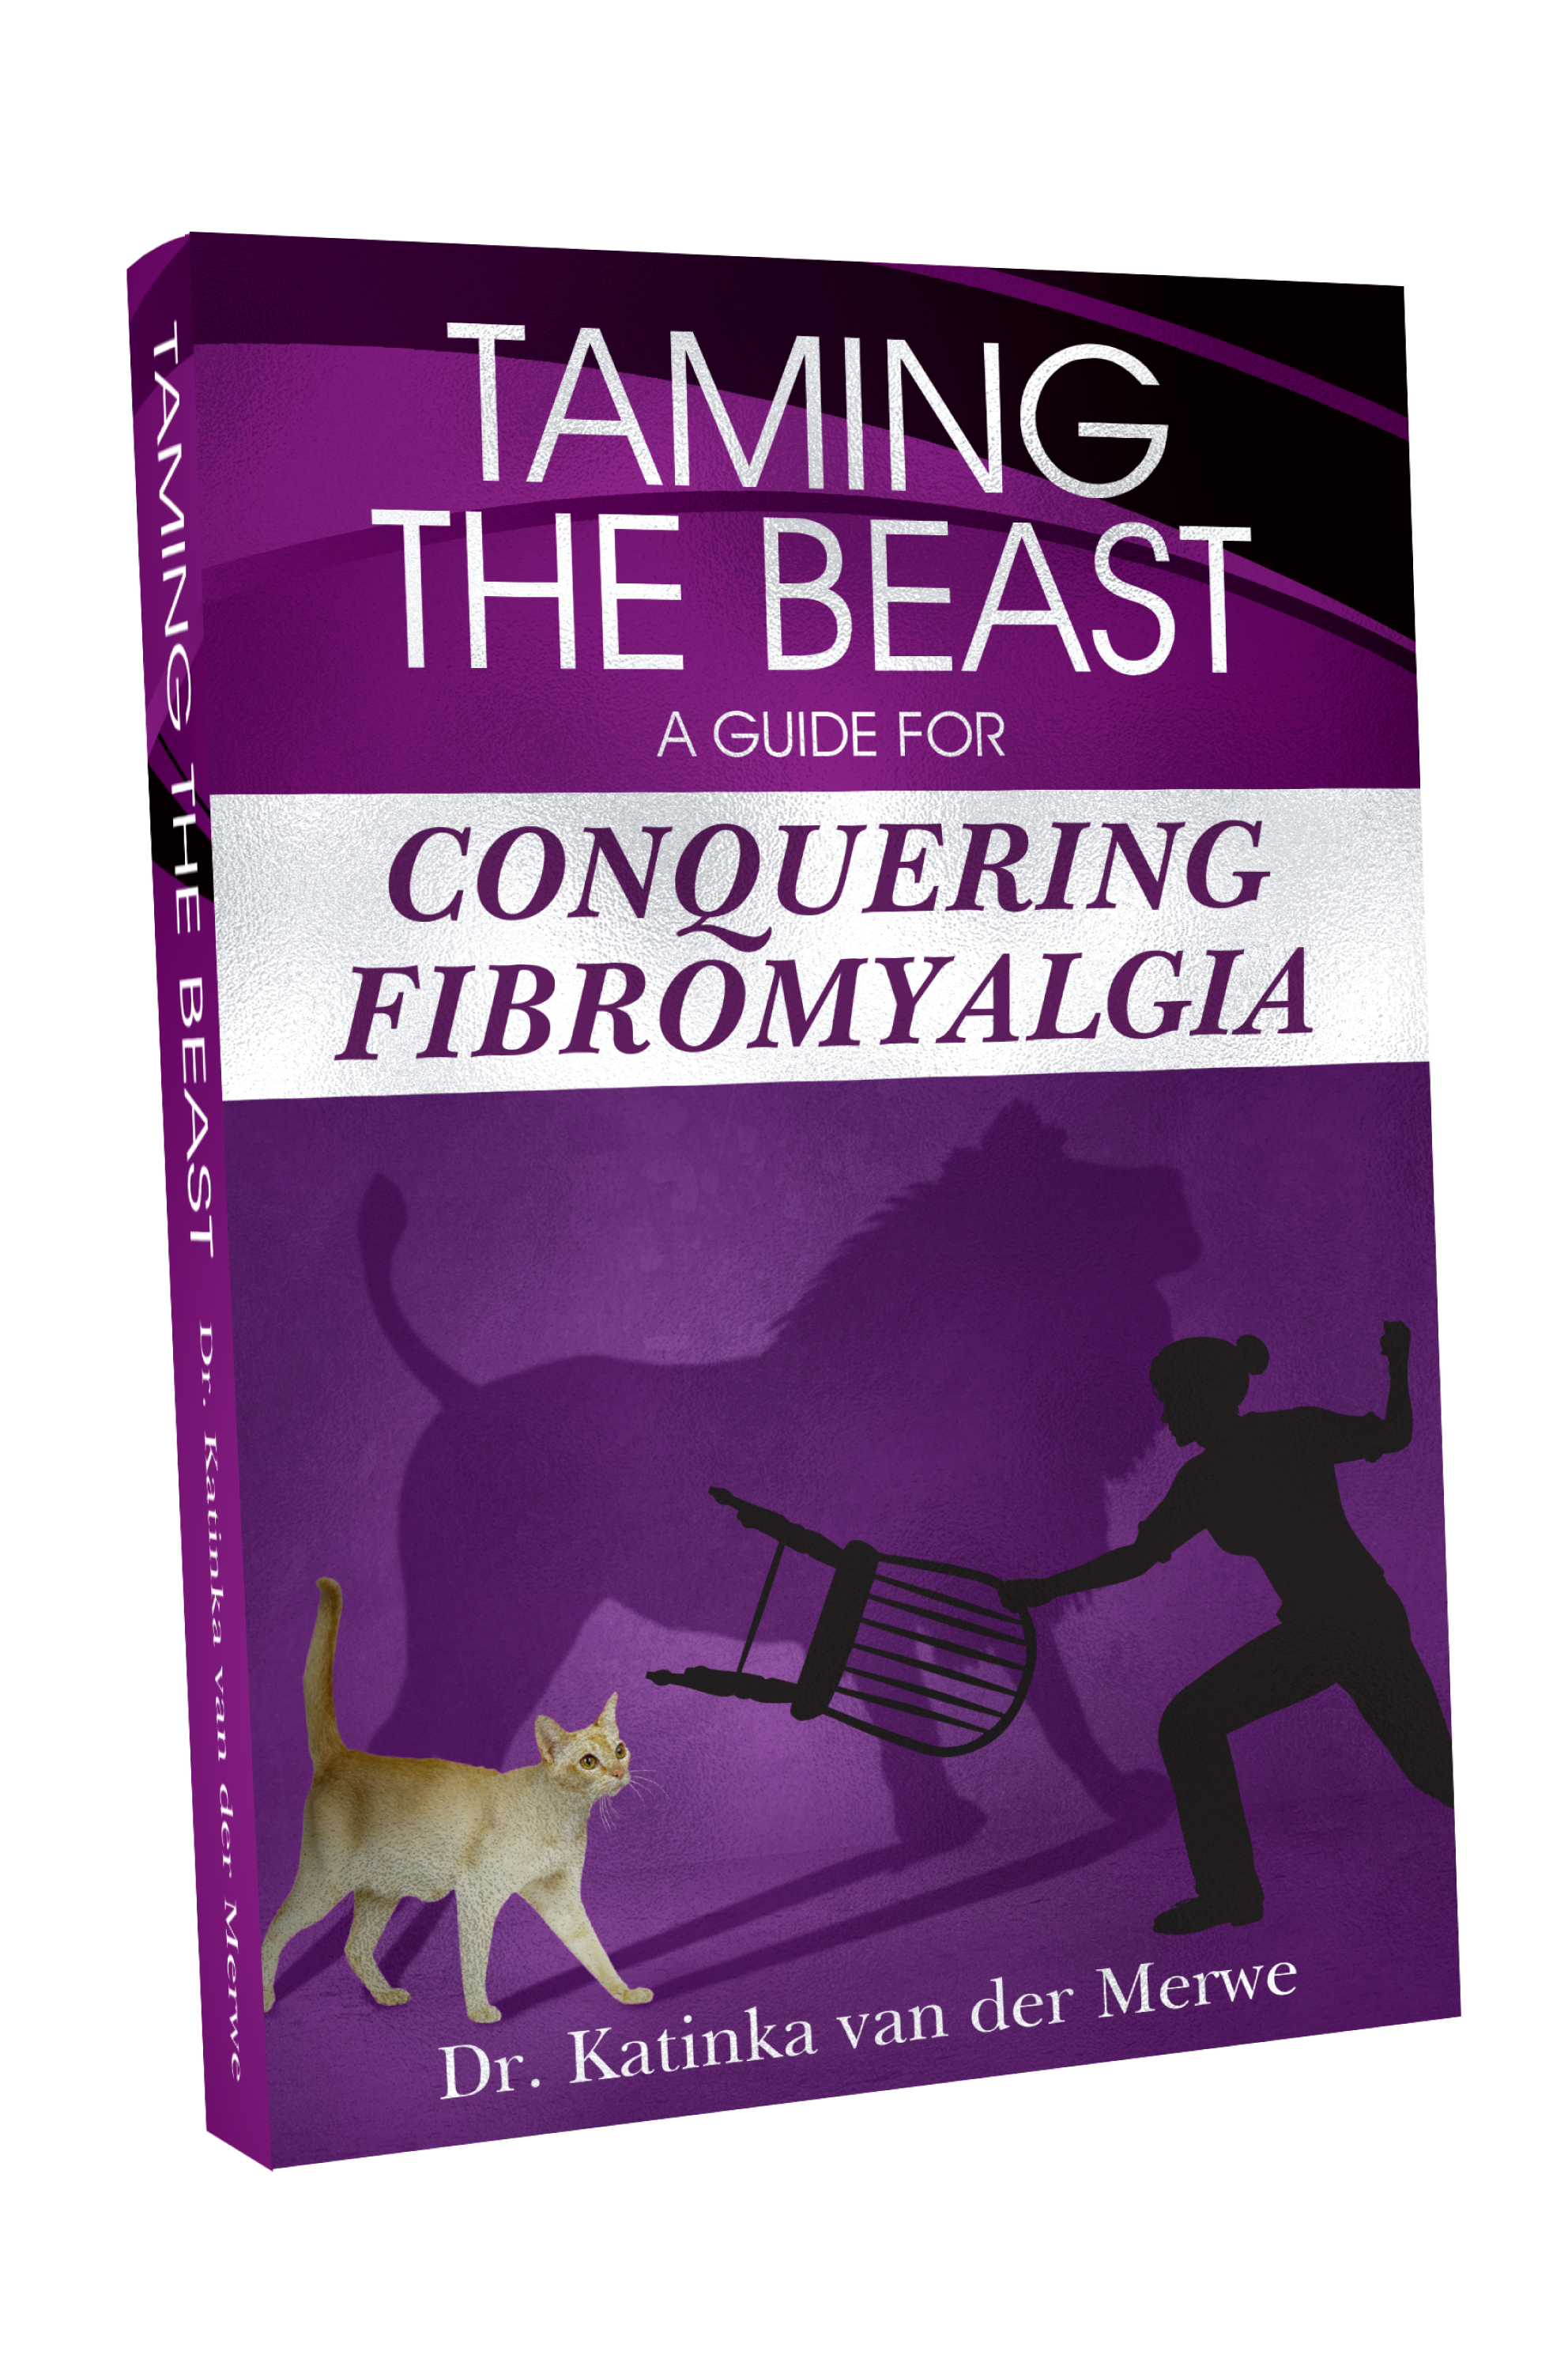 Video: A guide to conquering Fibromyalgia